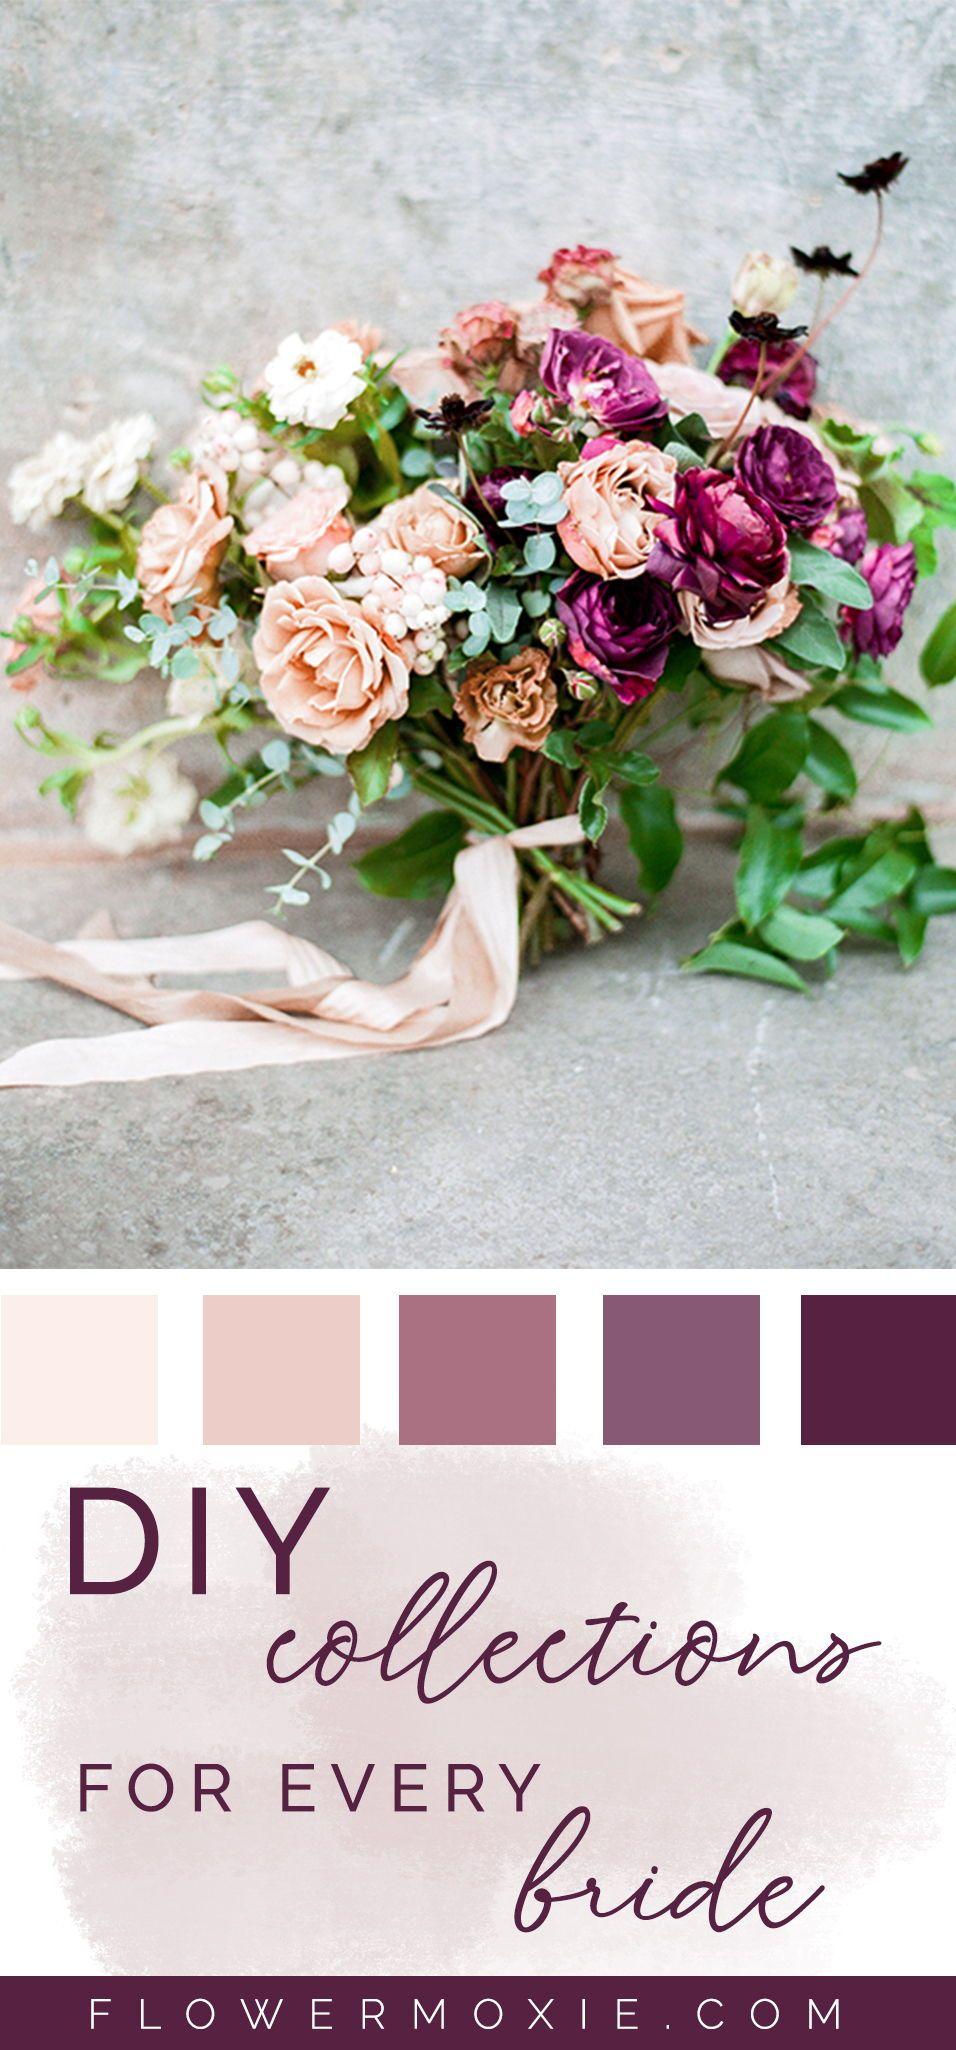 Get Inspired By Our Wedding Flower Packages Mix Match Flowers To Achieve The Look You Wan Wedding Flower Packages Diy Wedding Flowers Diy Bridesmaid Bouquet